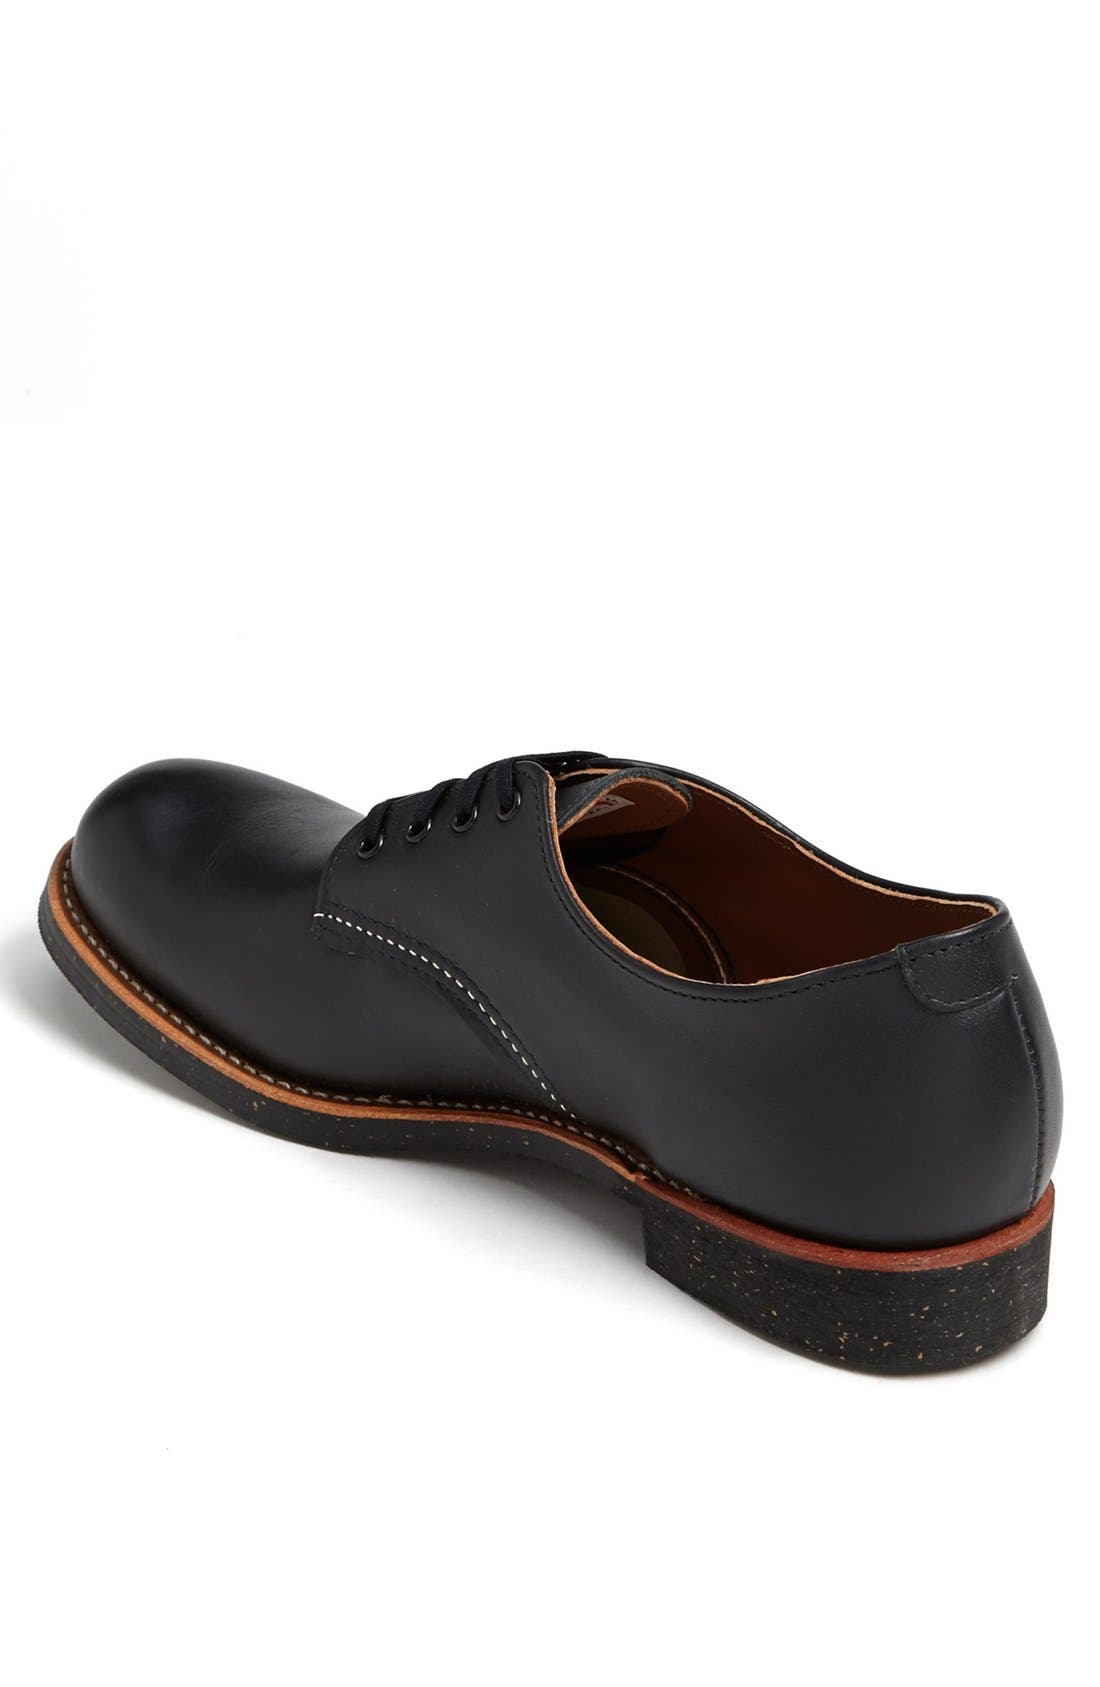 Alternate Image 2  - Red Wing Plain Toe Derby